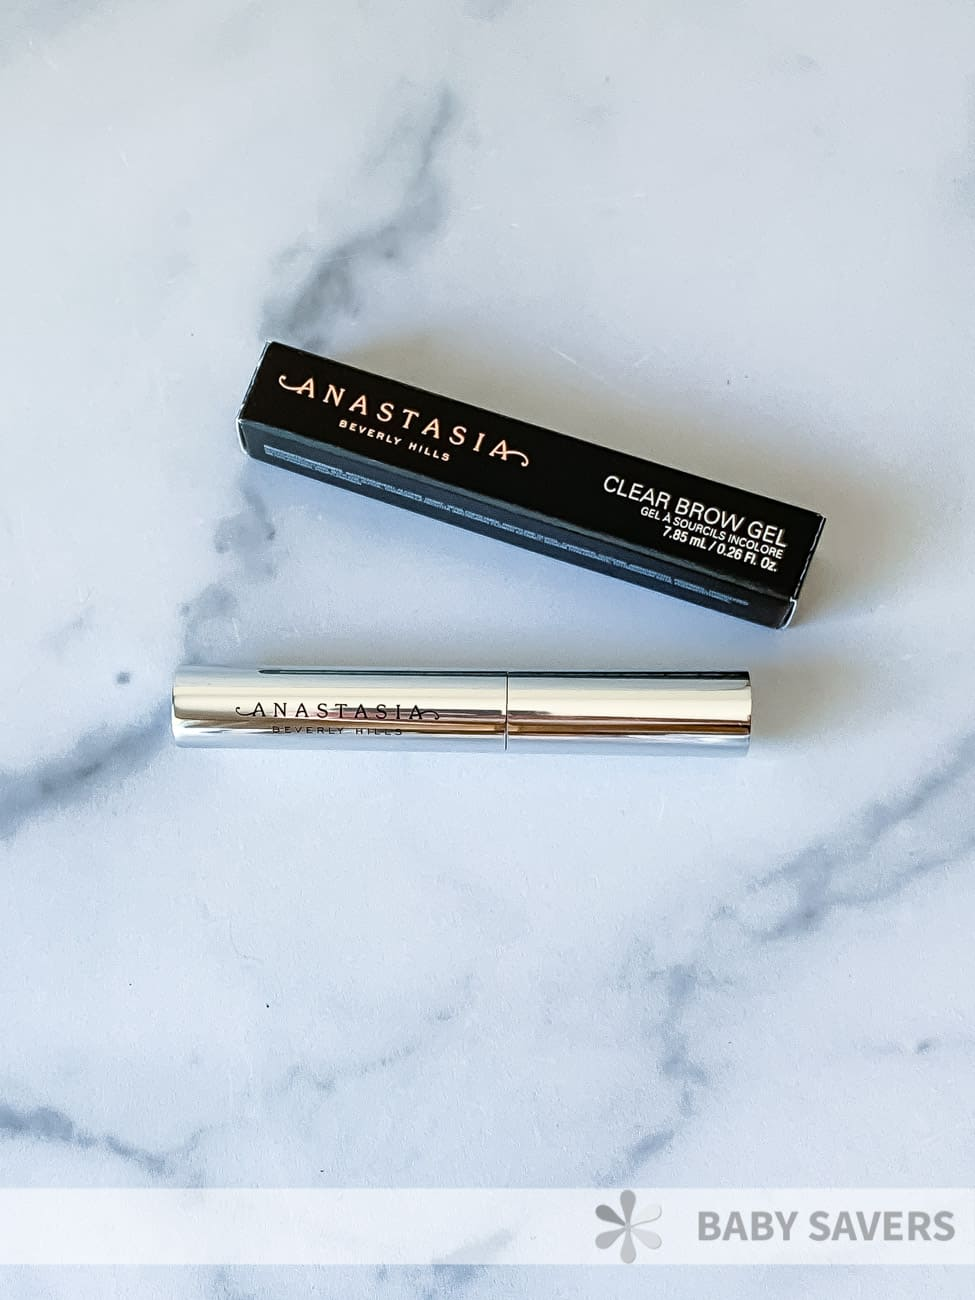 Anastasia Beverly Hills Clear Brow Gel silver tube and black box